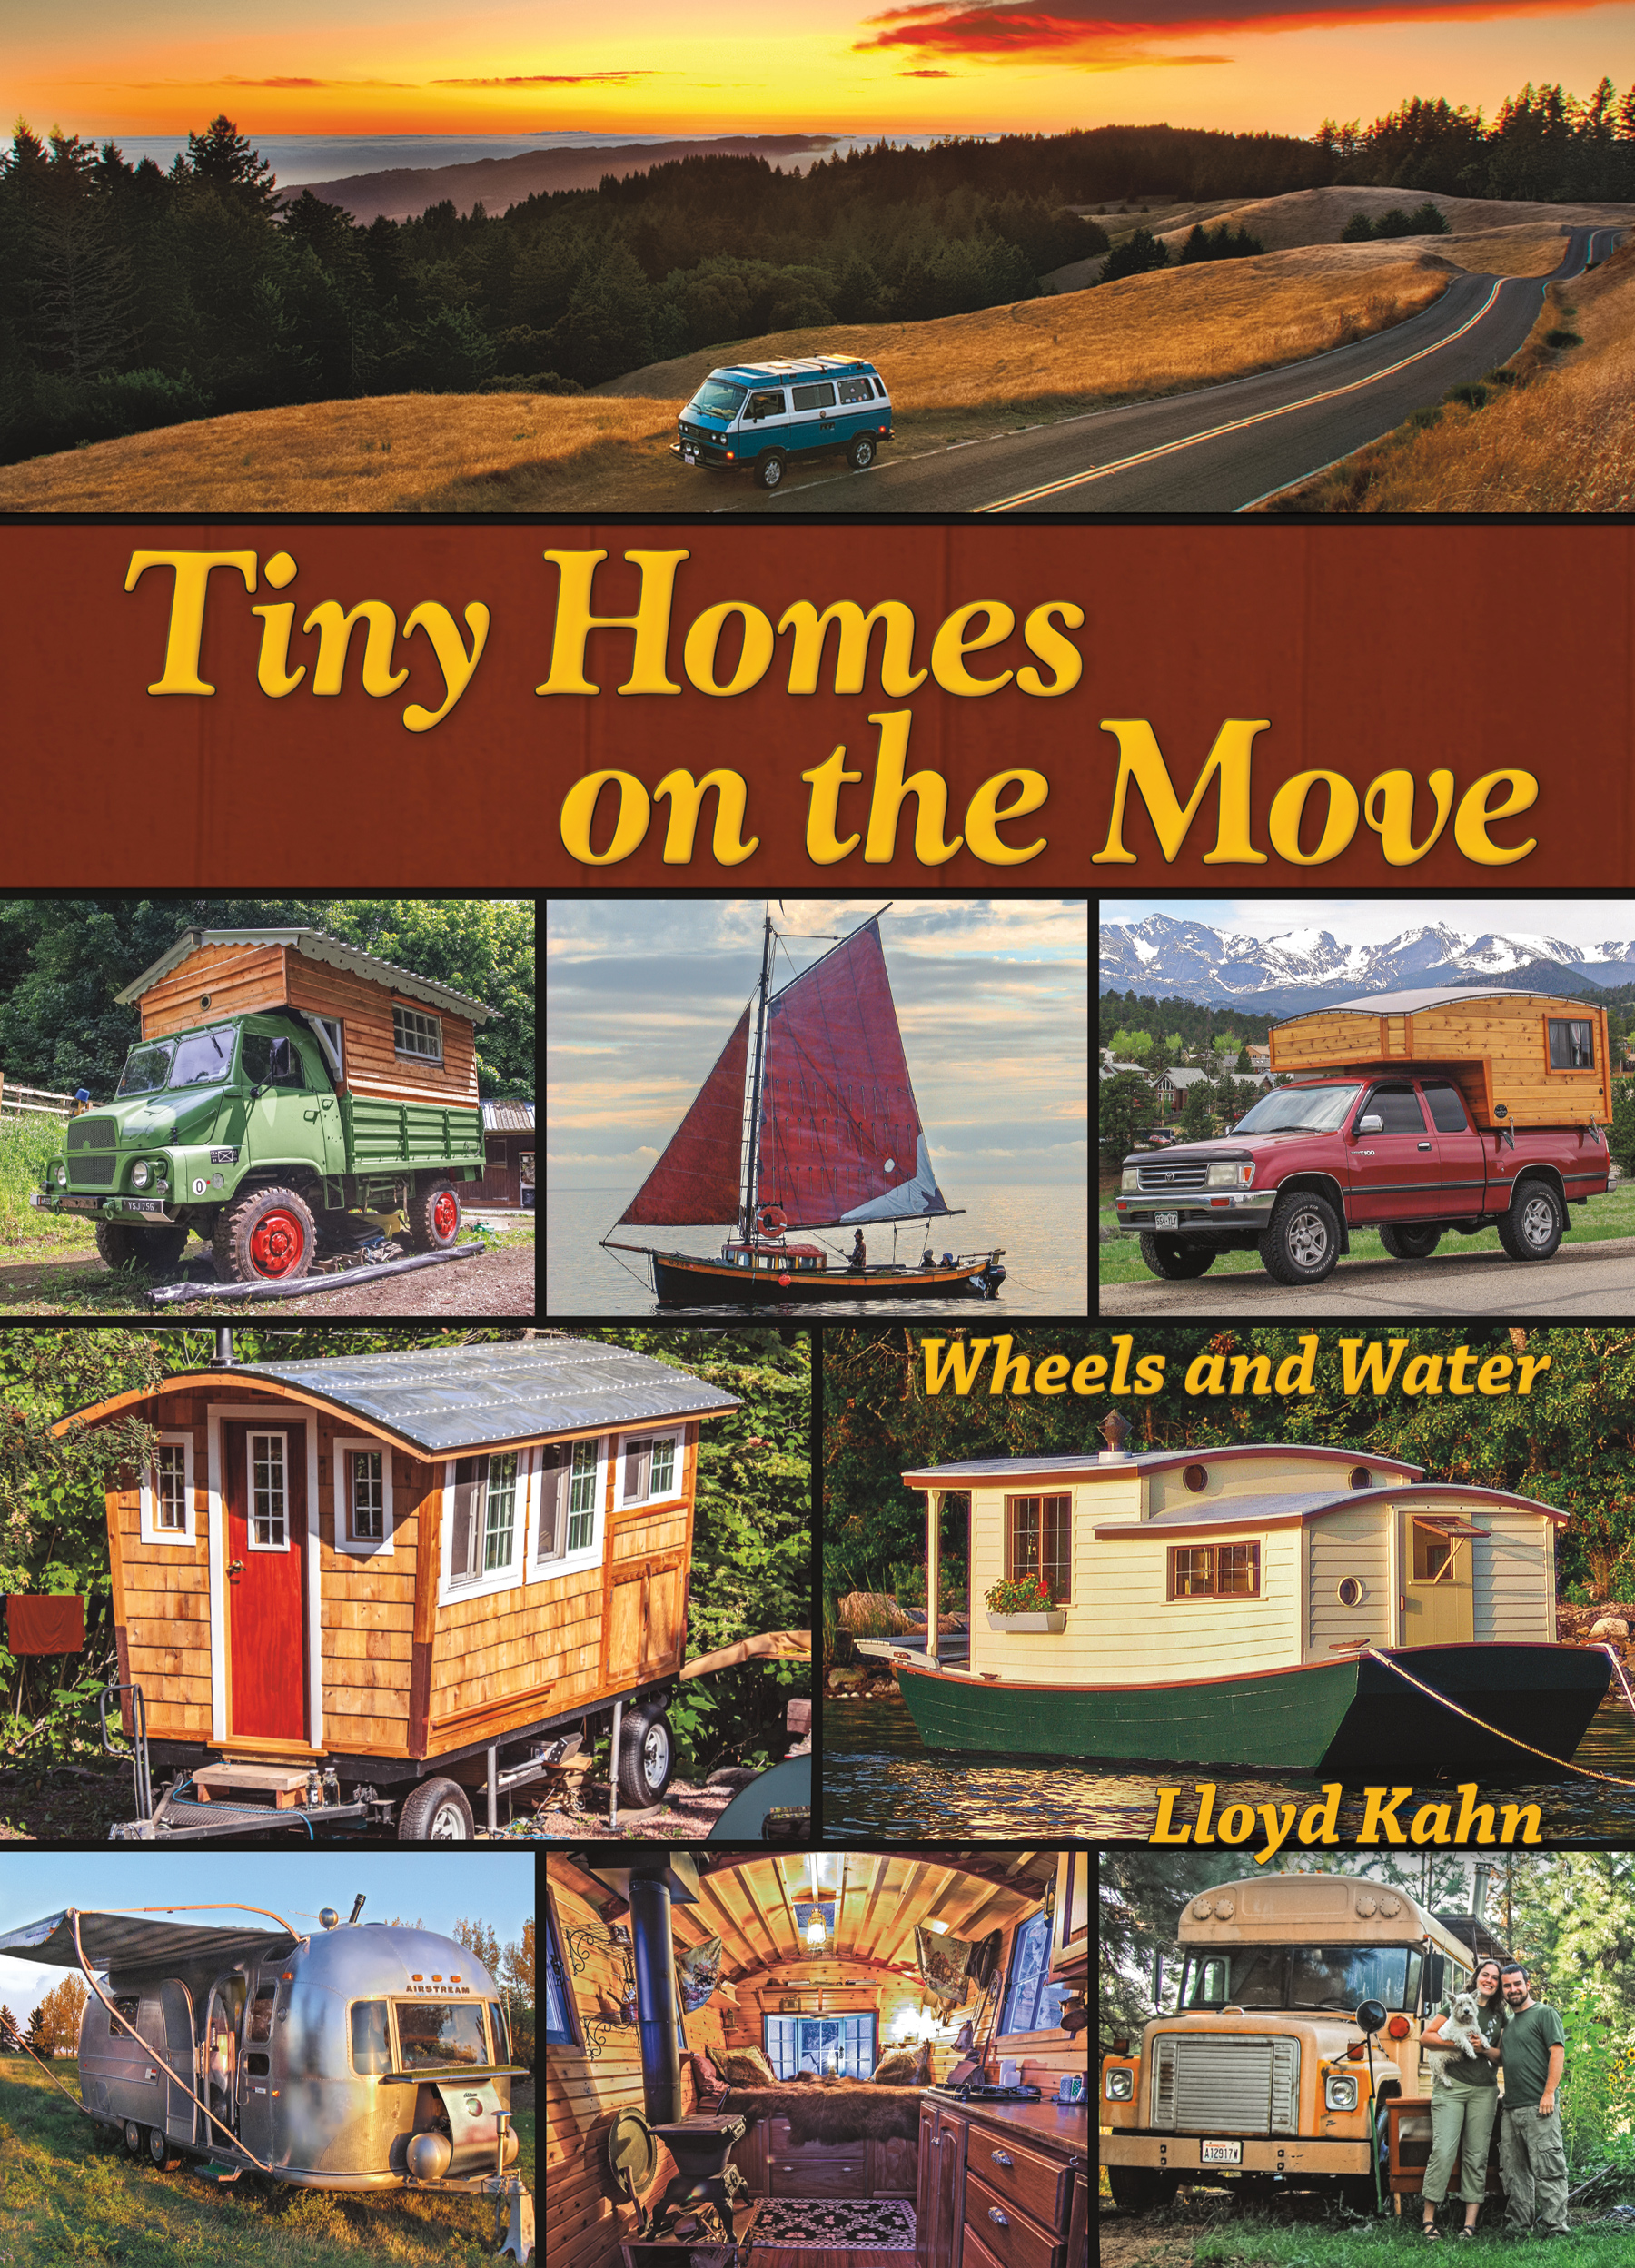 Our book about house trucks, campers, road rigs, handmade trailers, houseboats, sailboats, and small mobile living.